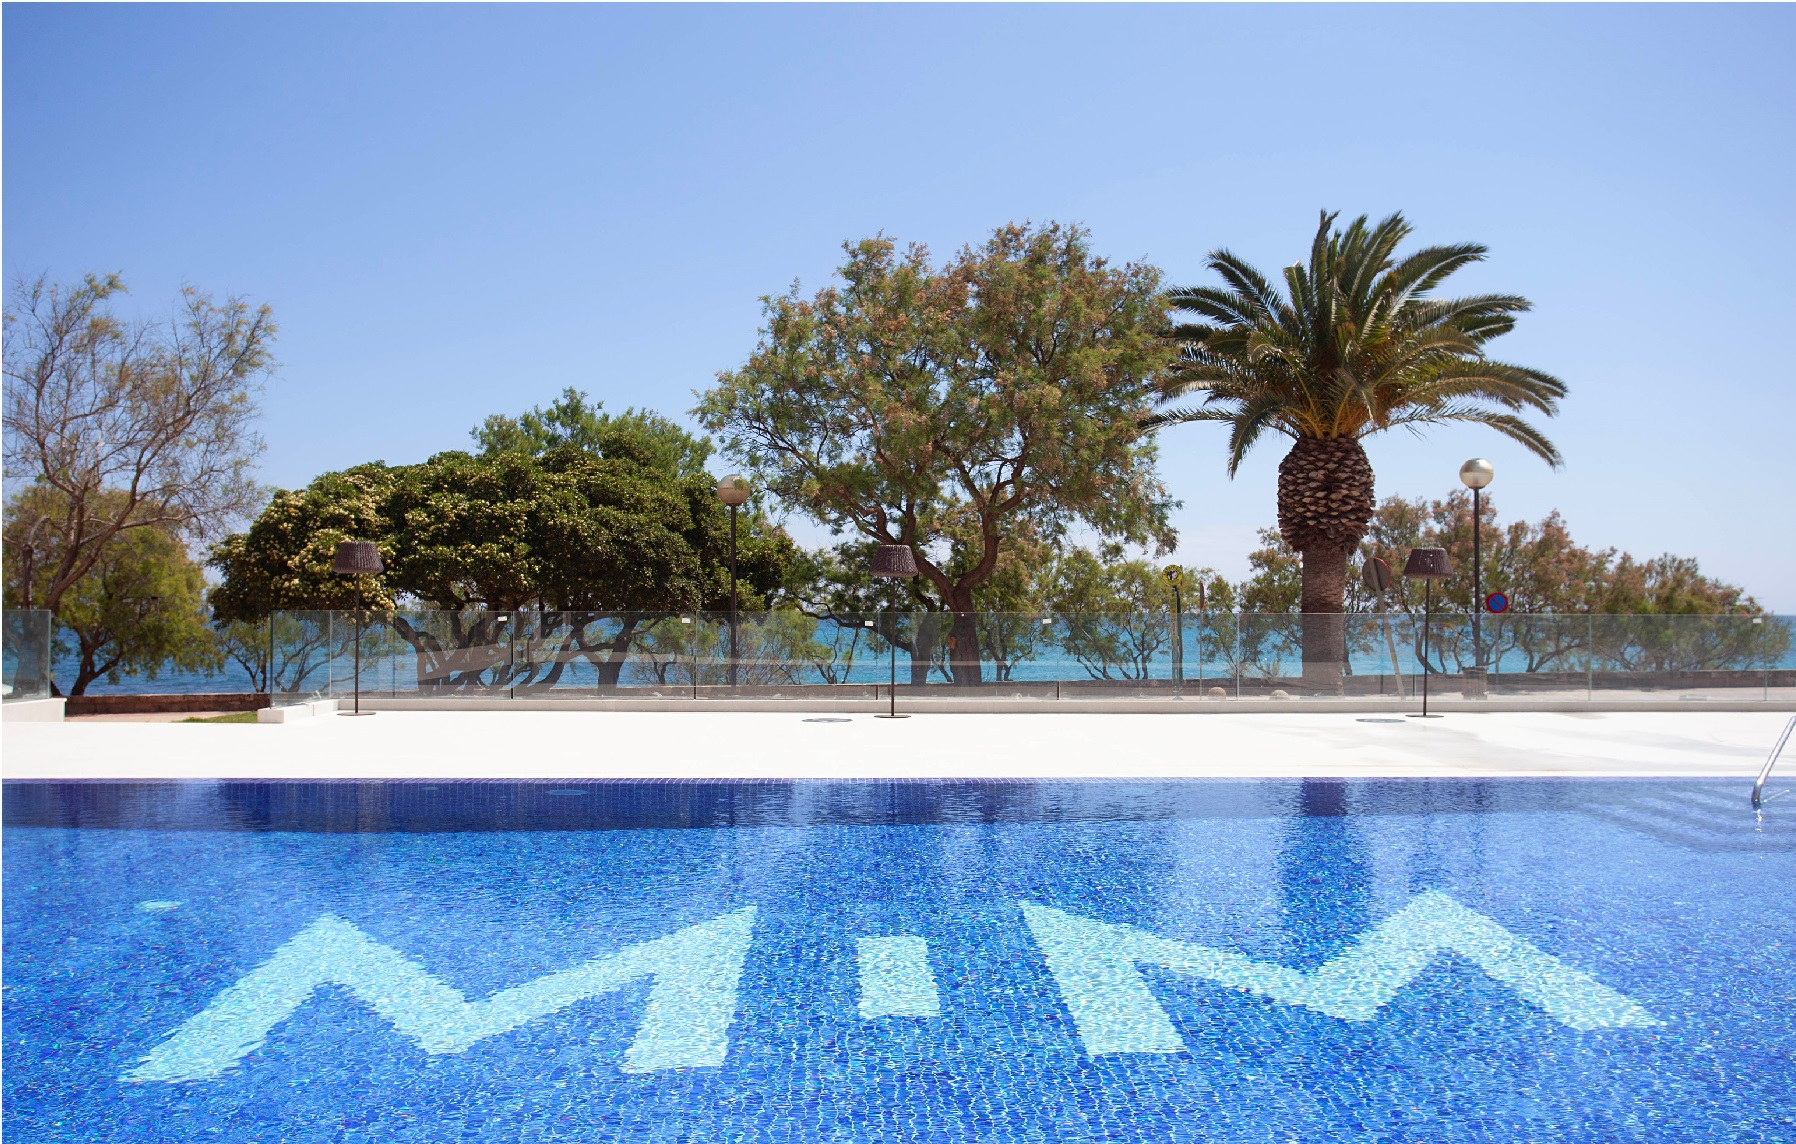 MIM MALLORCA BOUTIQUE & SPA - ADULTS ONLY